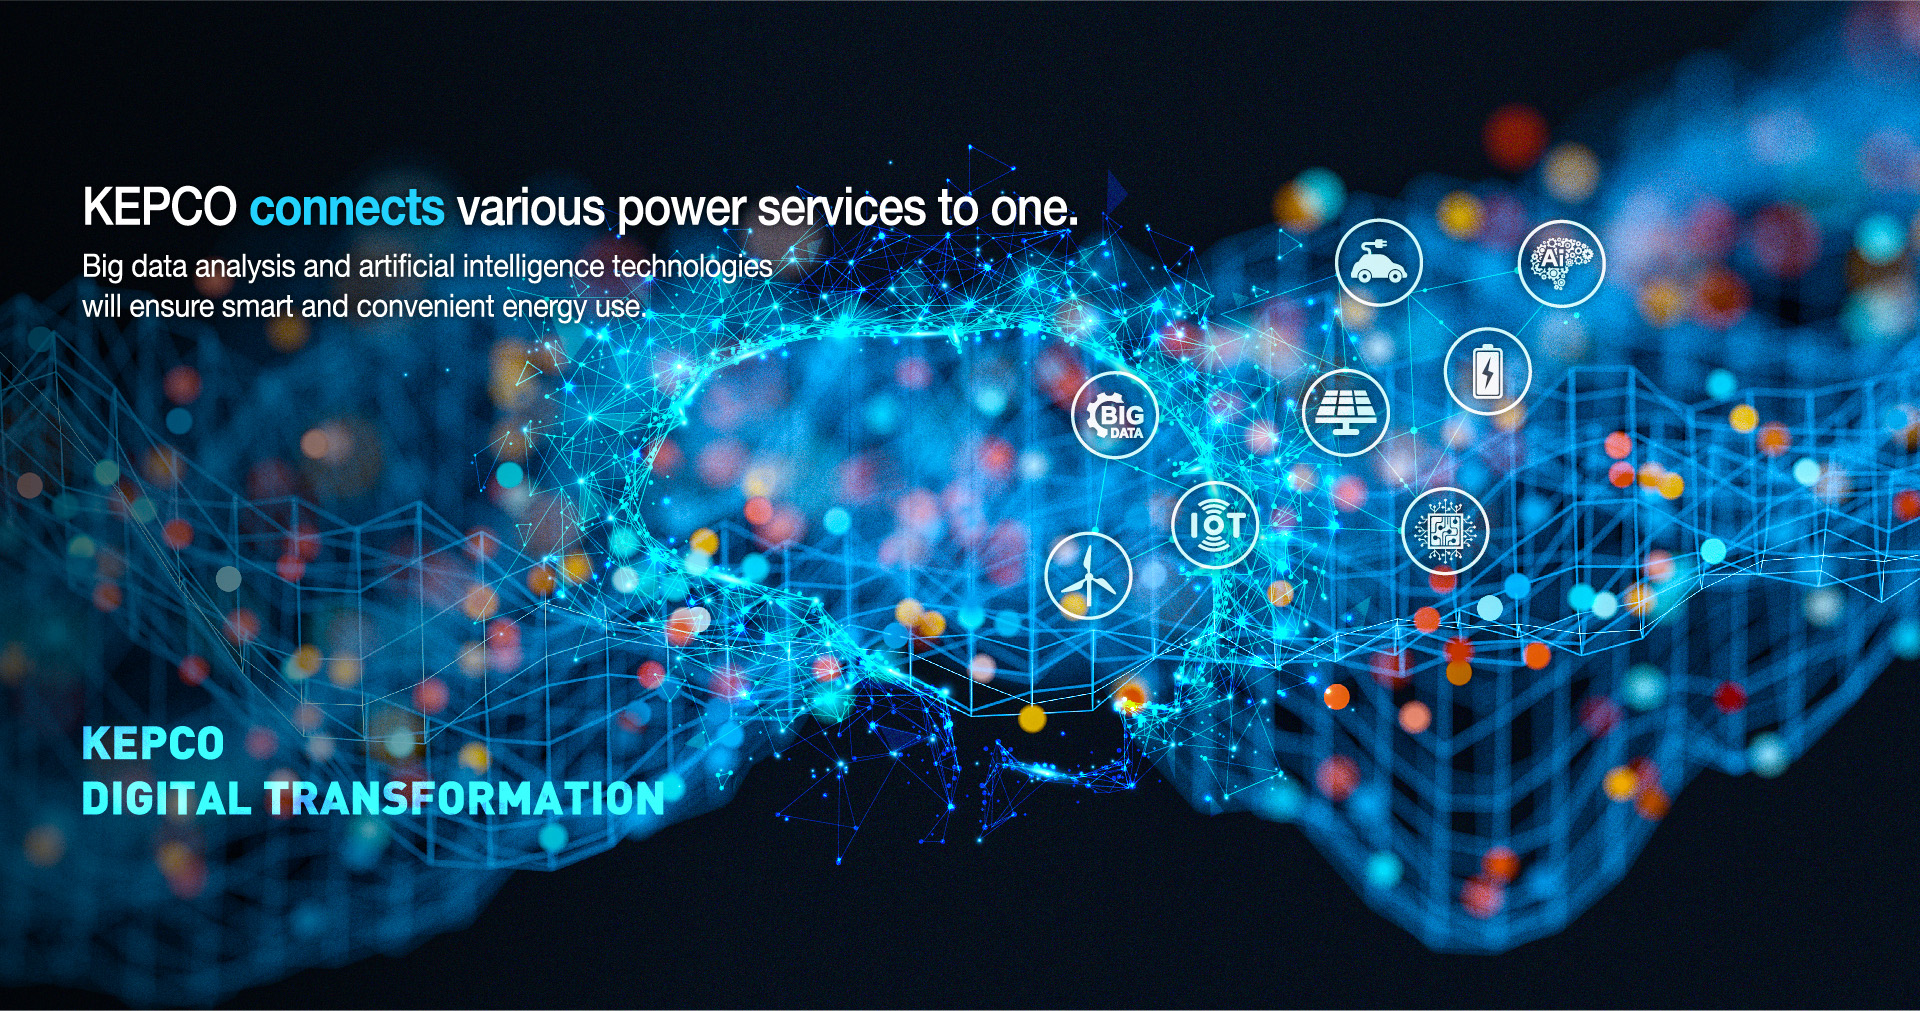 KEPCO connects various power services to one. Big data analysis and artificial intelligence technologies will ensure smart and convenient energy use. KEPCO DIGITAL TRANSFORMATION